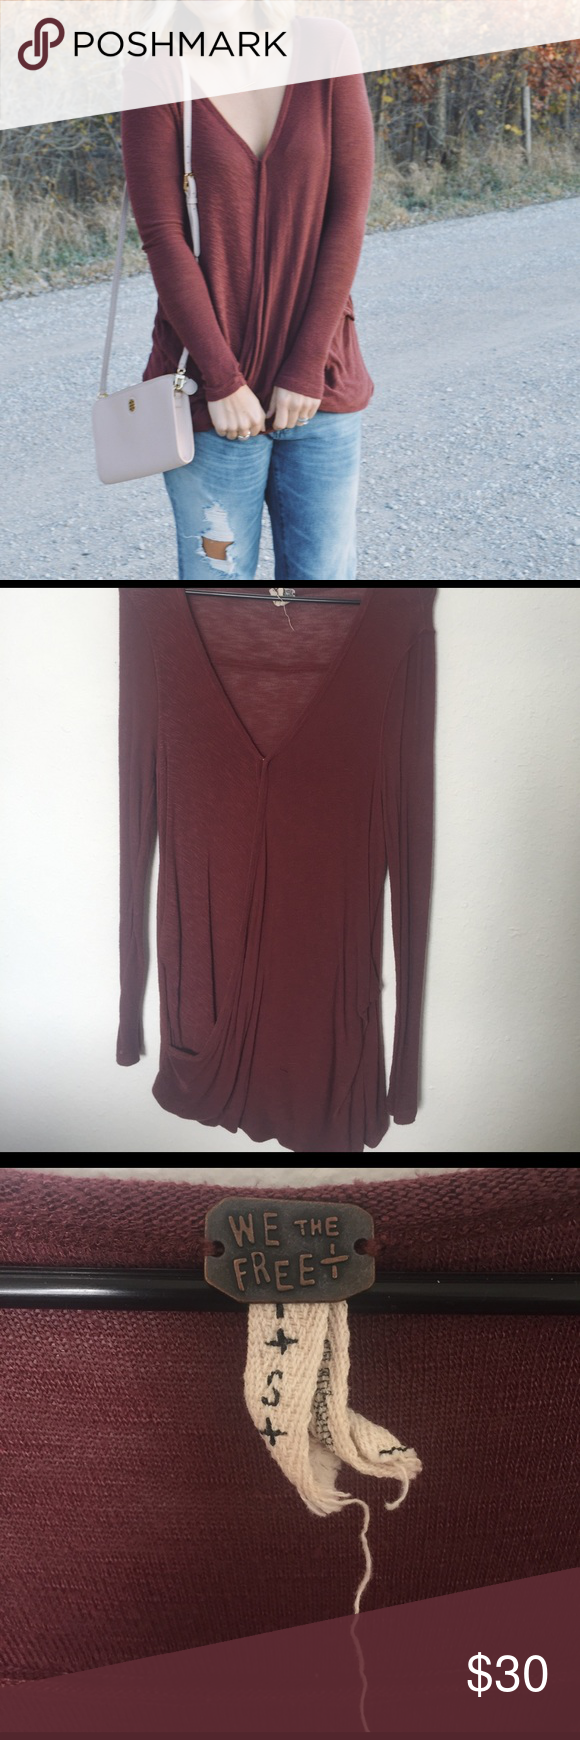 Free People wrap-front top! Size S. Long length. Thin material. Burgundy/rust color. Worn twice. Free People Tops Tees - Long Sleeve